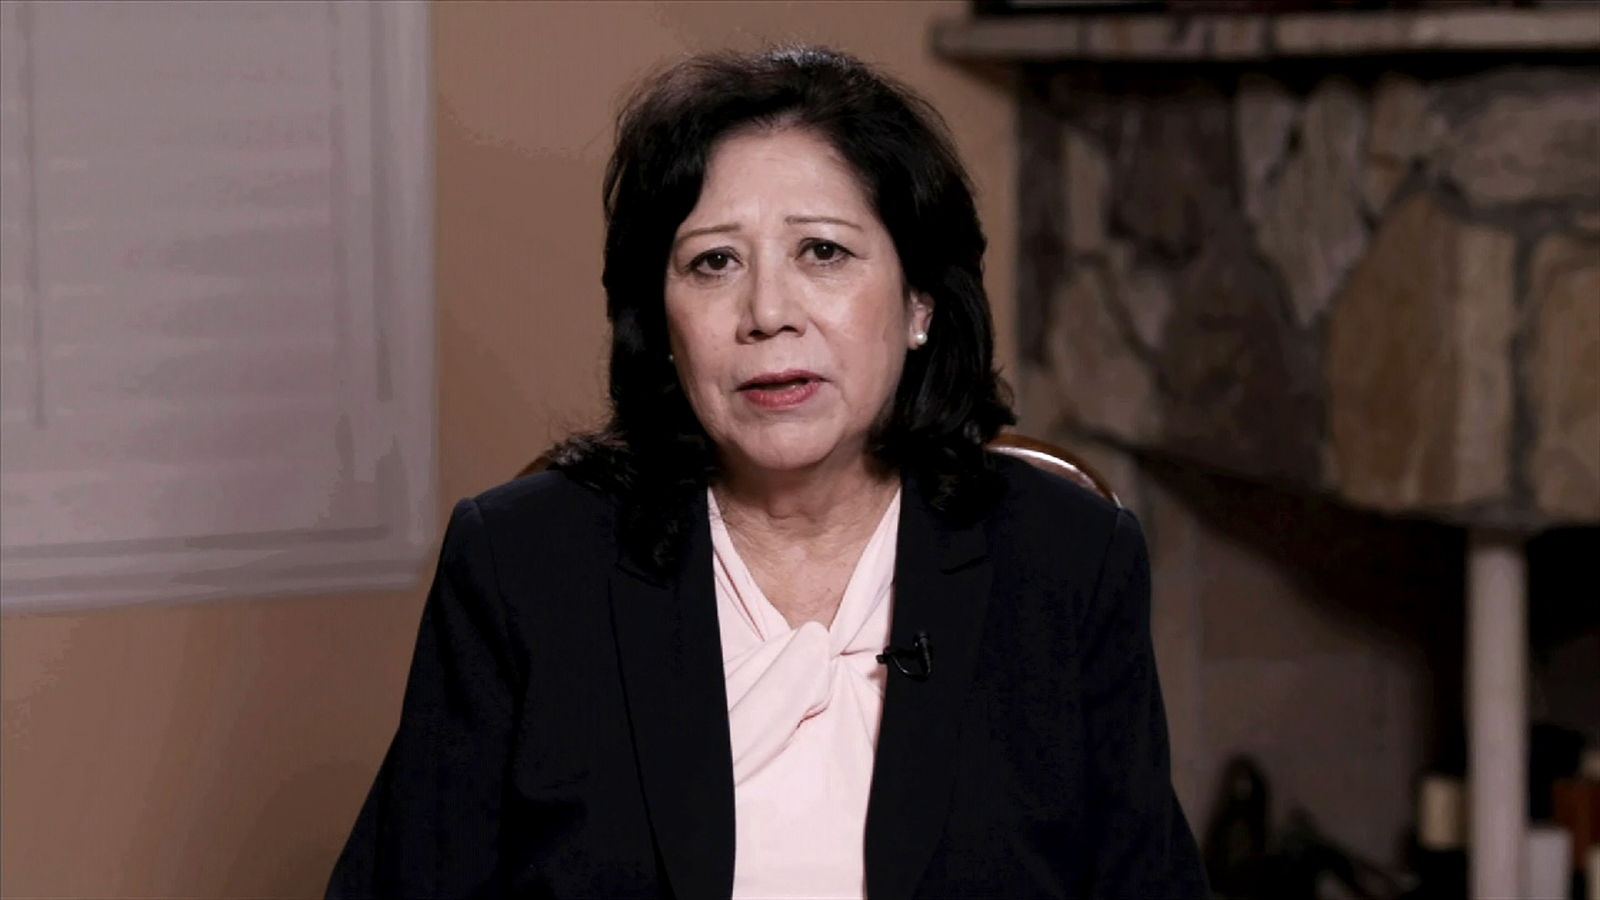 Former Secretary of Labor Hilda Solis.